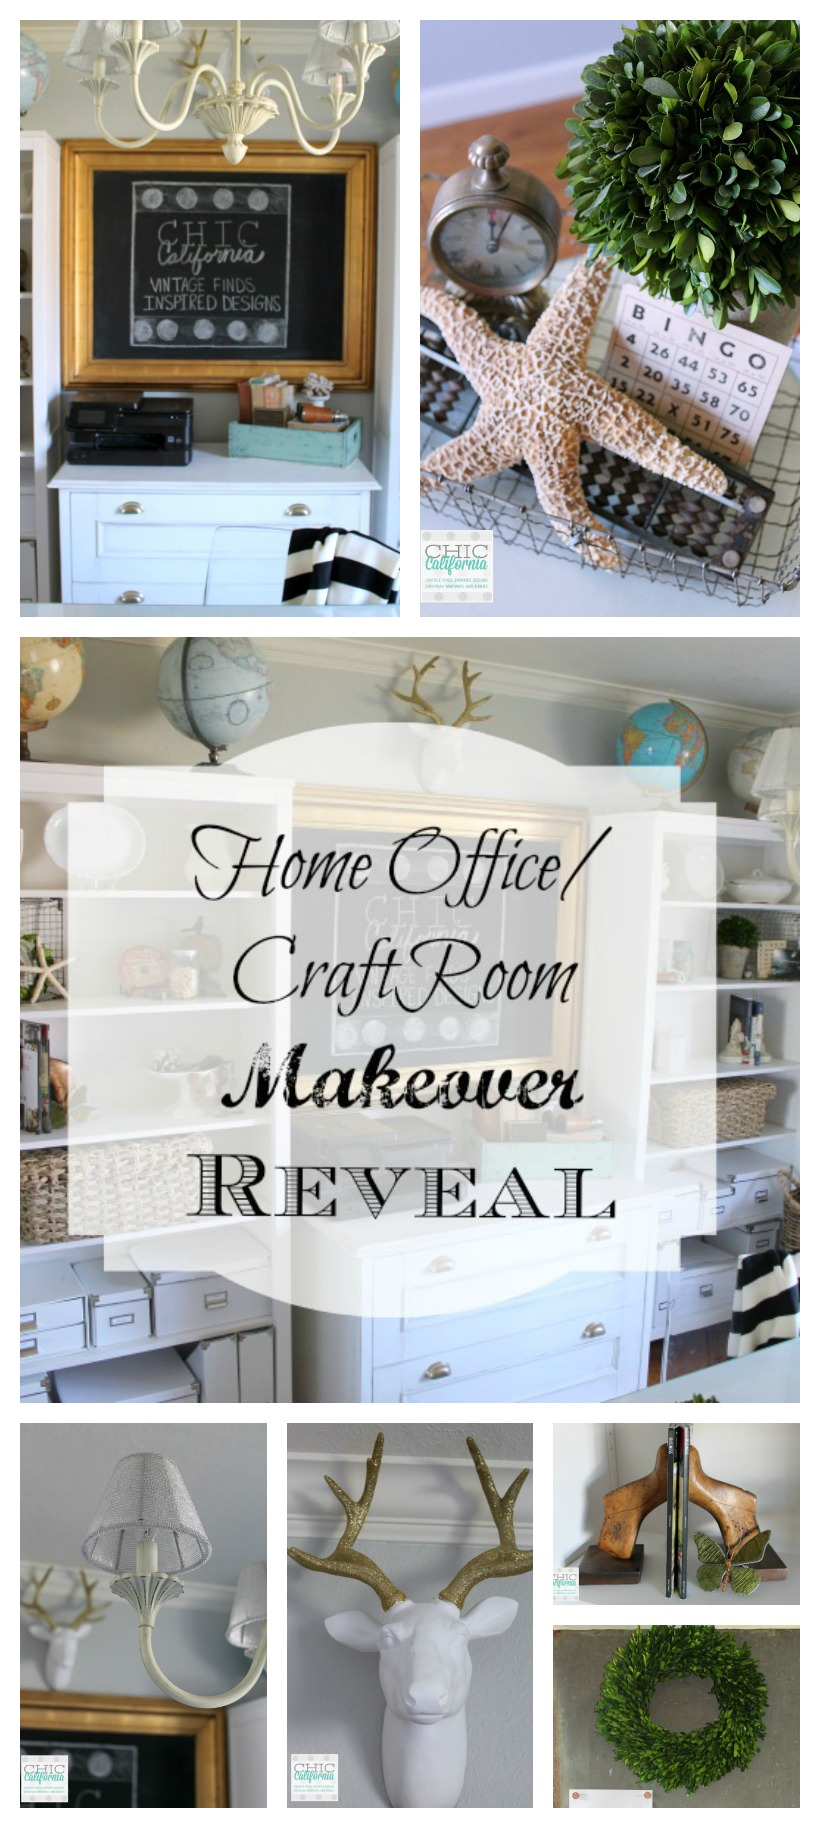 Home office Craft Room Makeover by Chic California